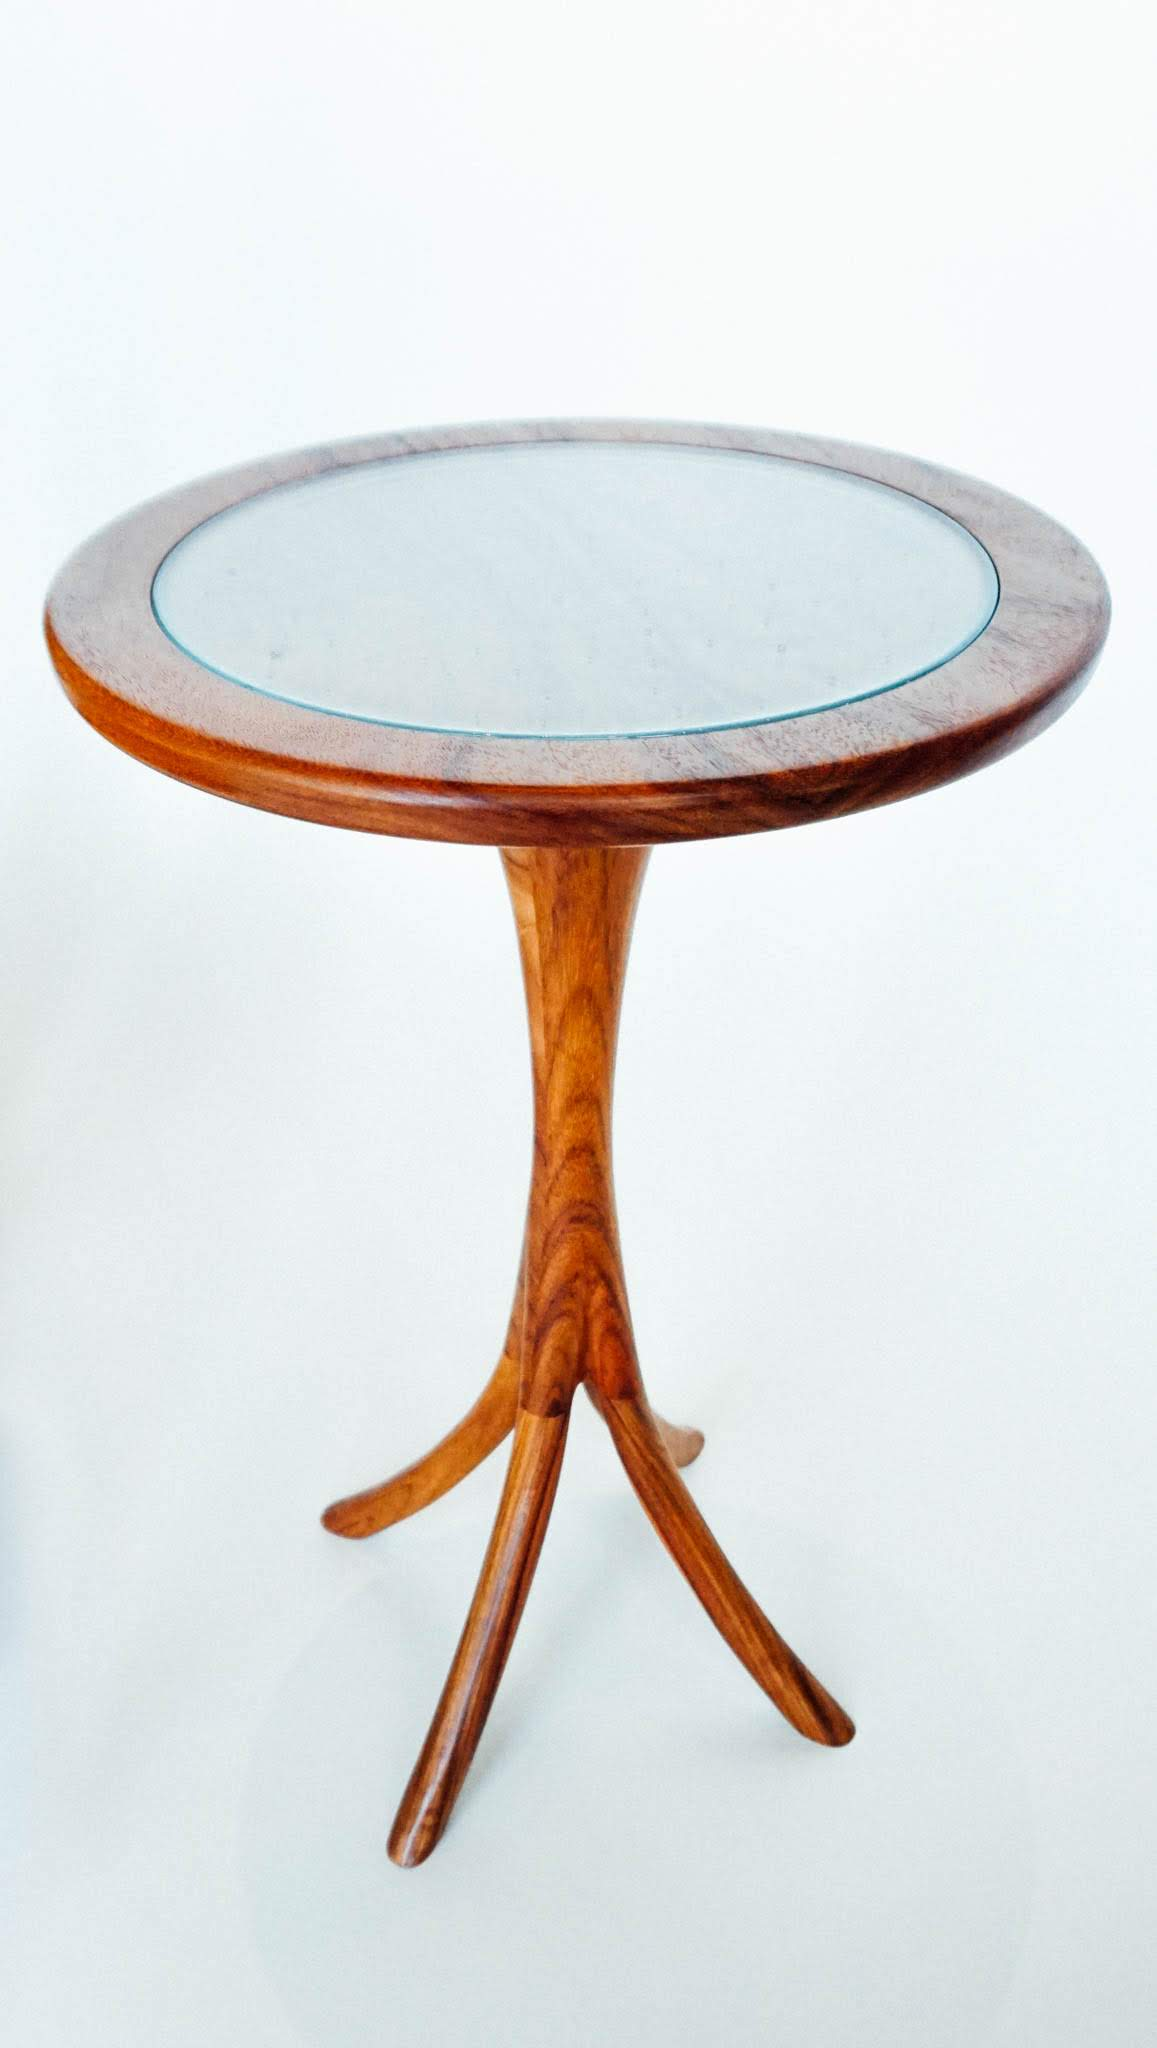 """The table is approximately 22"""" tall and 14"""" in diameter and shown in macawood. It is perfect for a cuppa of whatever suits you. The custom made glass top provides visibility to the wood's beauty and an attractive cover to prevent damage to the finish. It is the perfect complement to your new chair."""